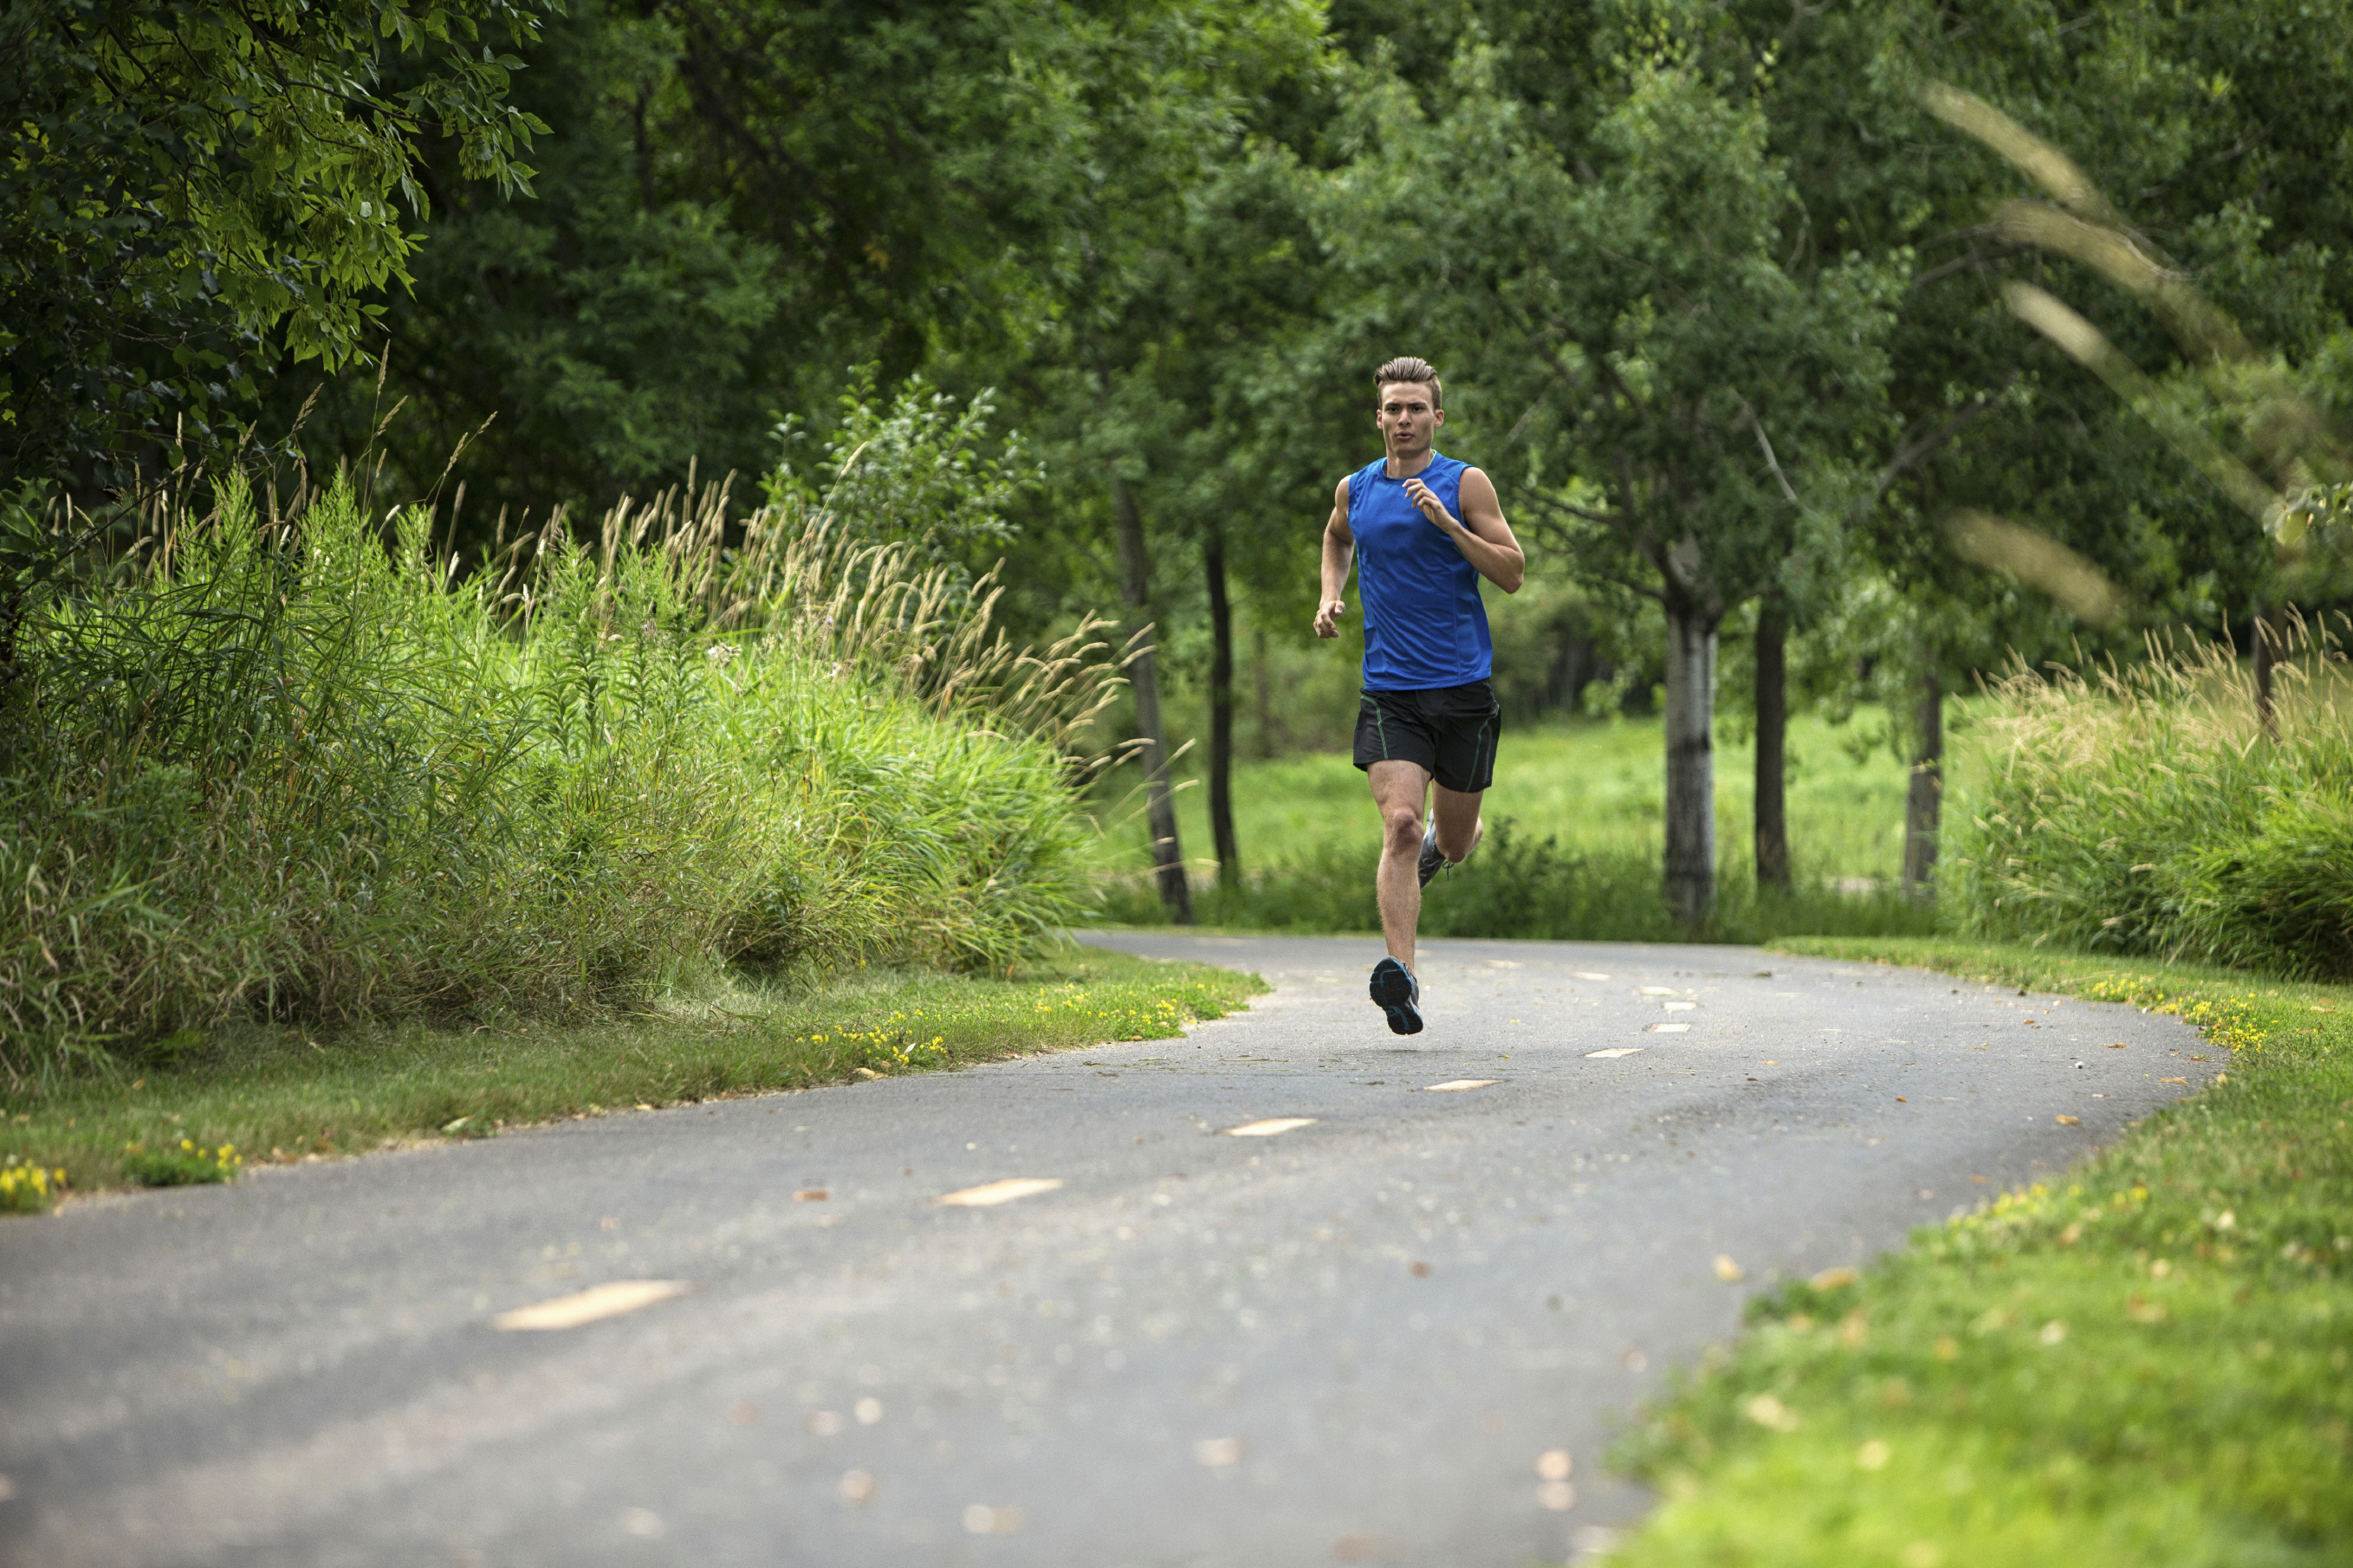 Young Male Jogger Jogging On Road